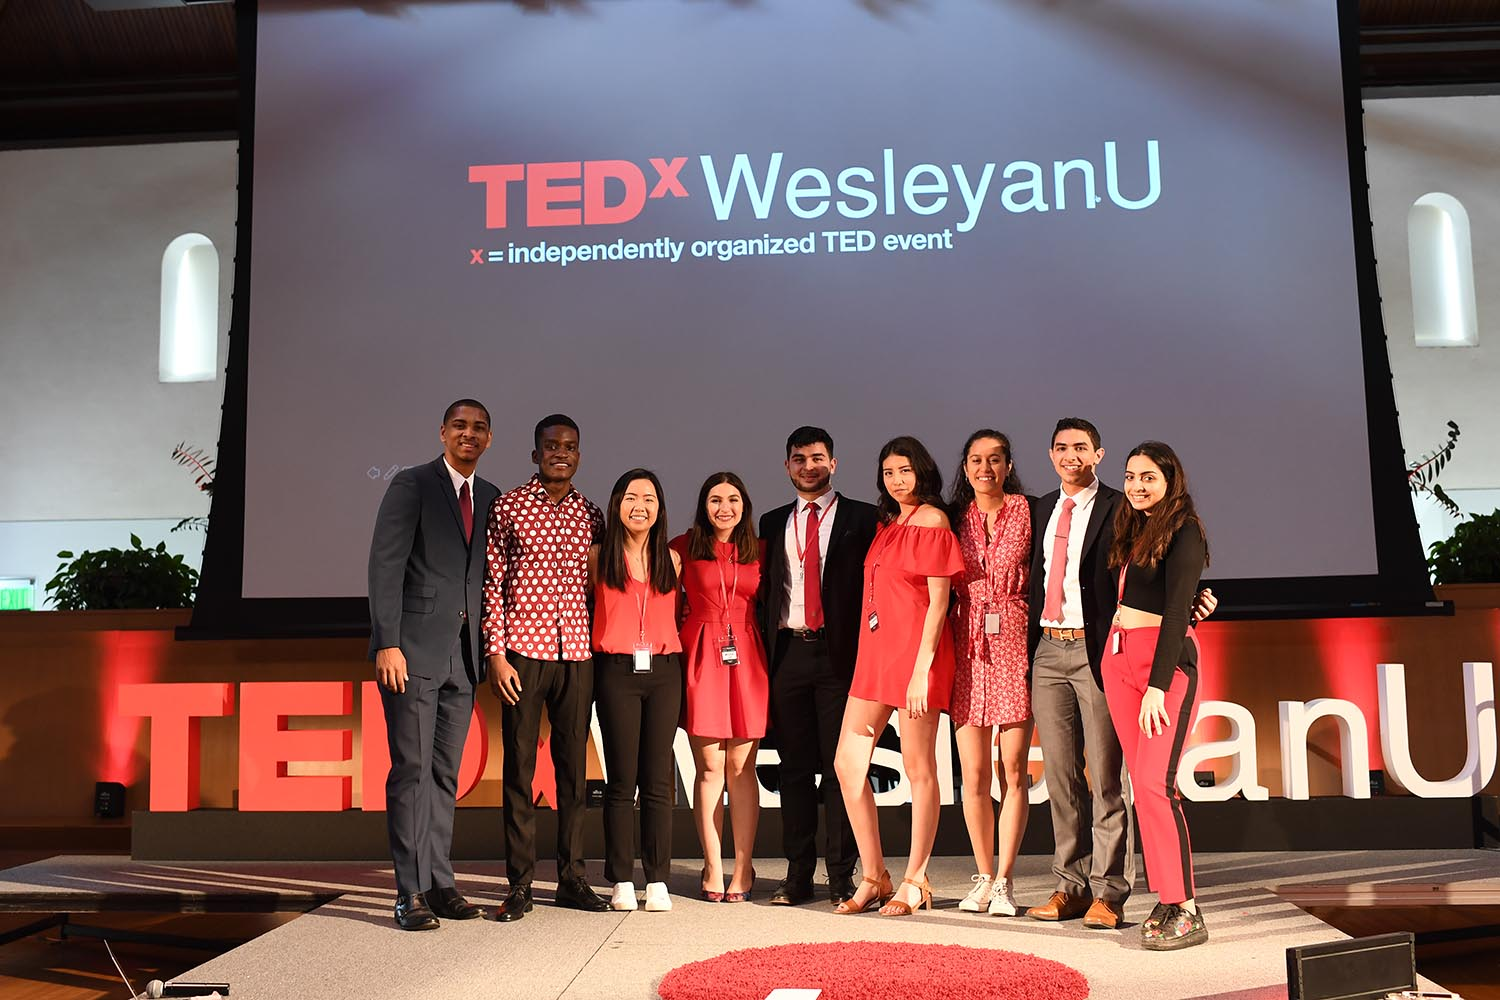 Members of the 2019 TEDxWesleyanU team gathered on the TEDx stage in Beckham Hall following the successful conference. Tickets for the event sold out within 12 hours.